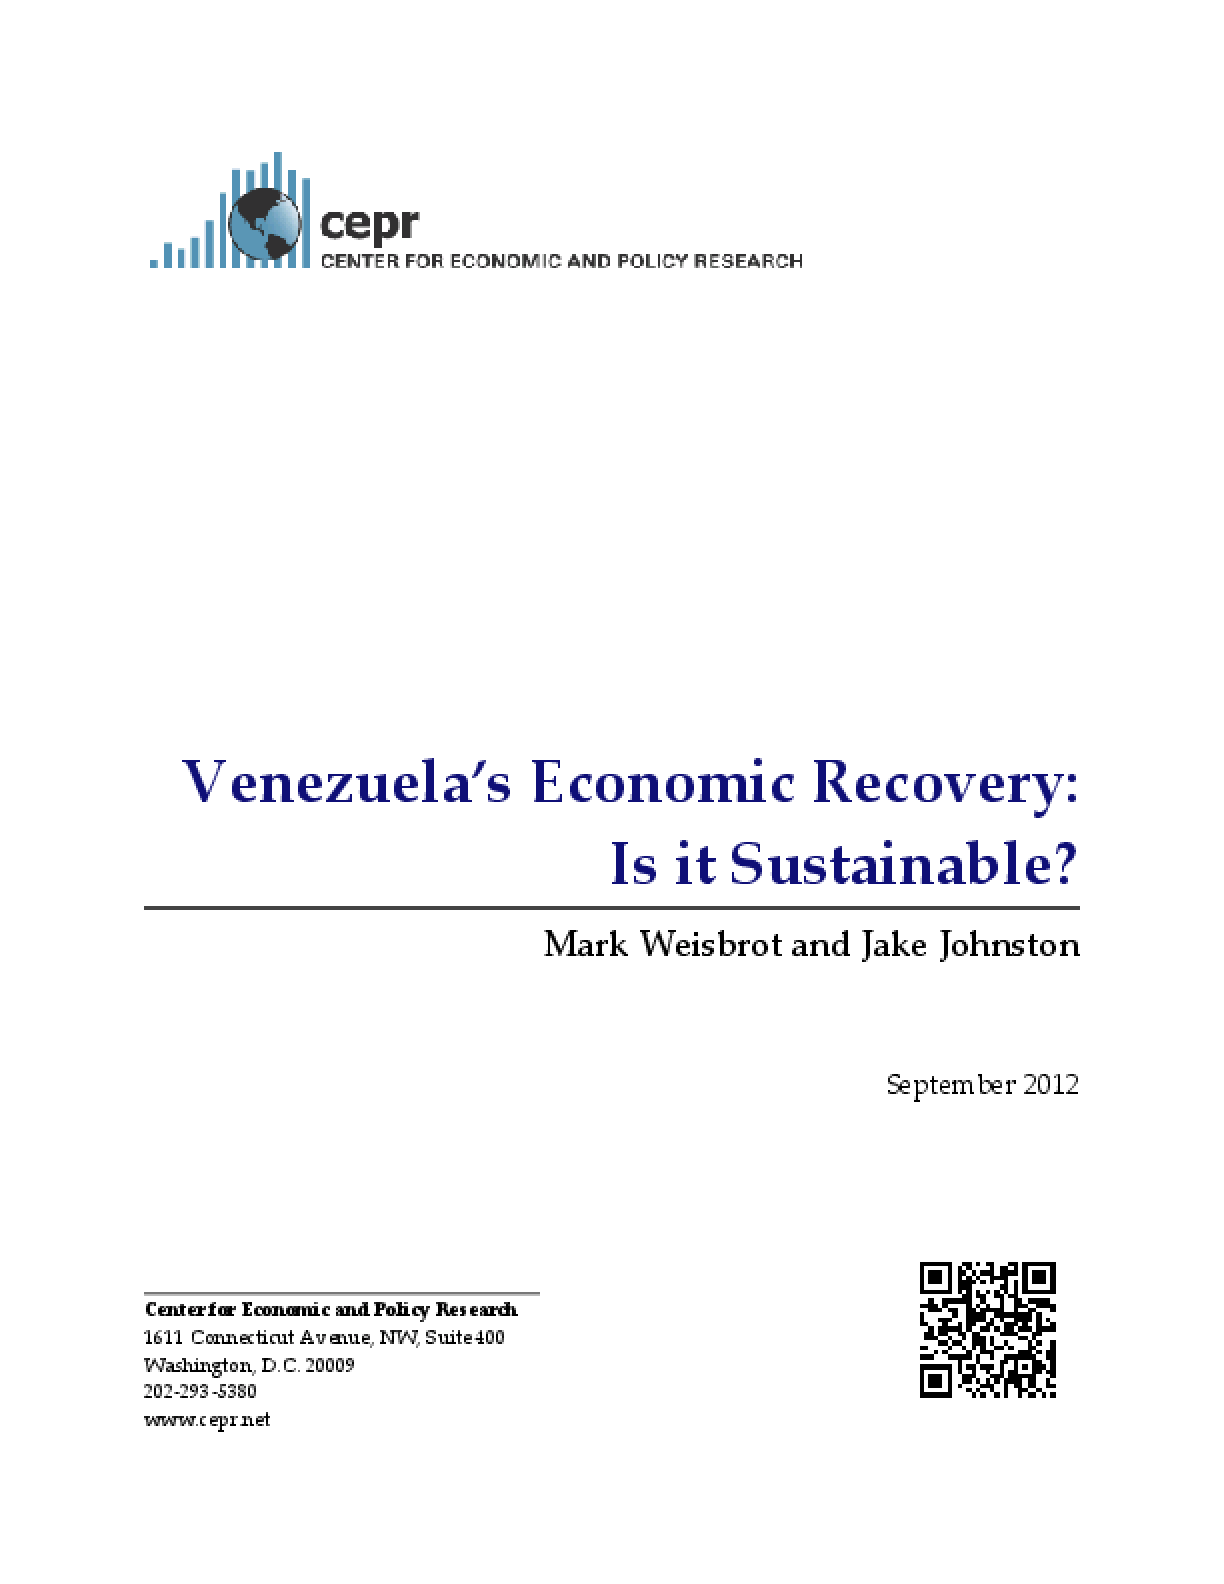 Venezuela's Economic Recovery: Is It Sustainable?